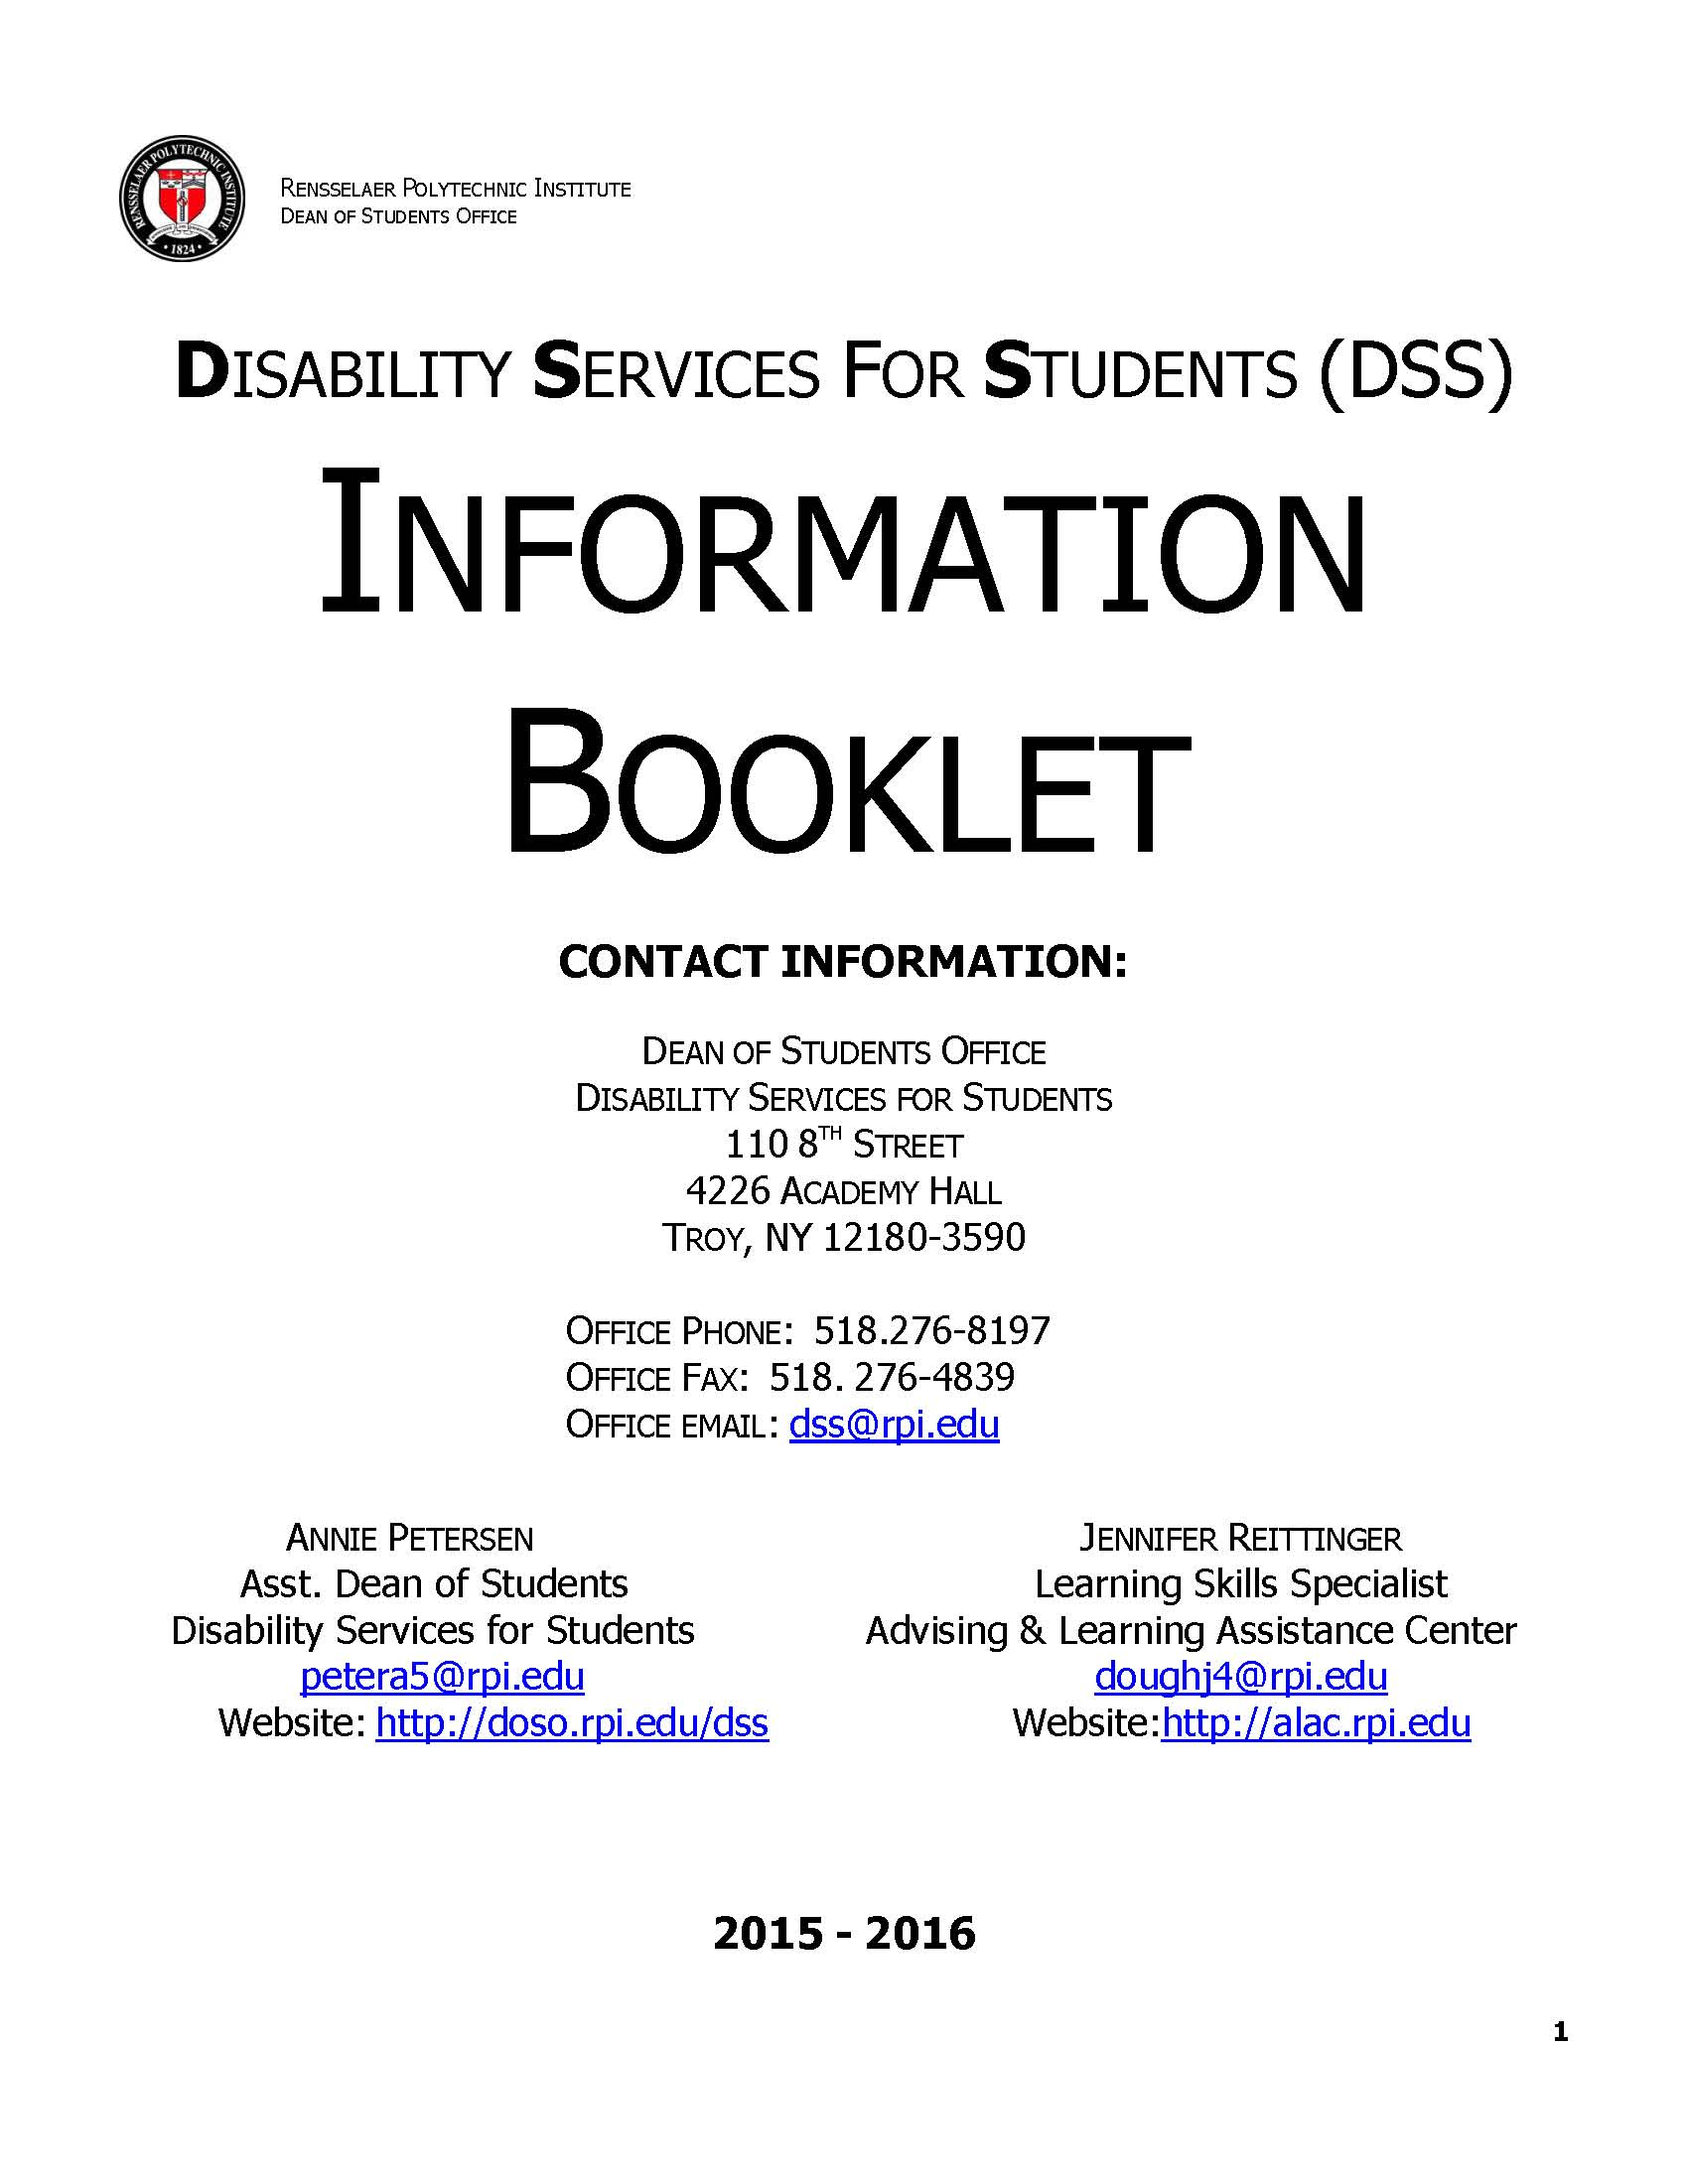 image of DSS Info Booklet